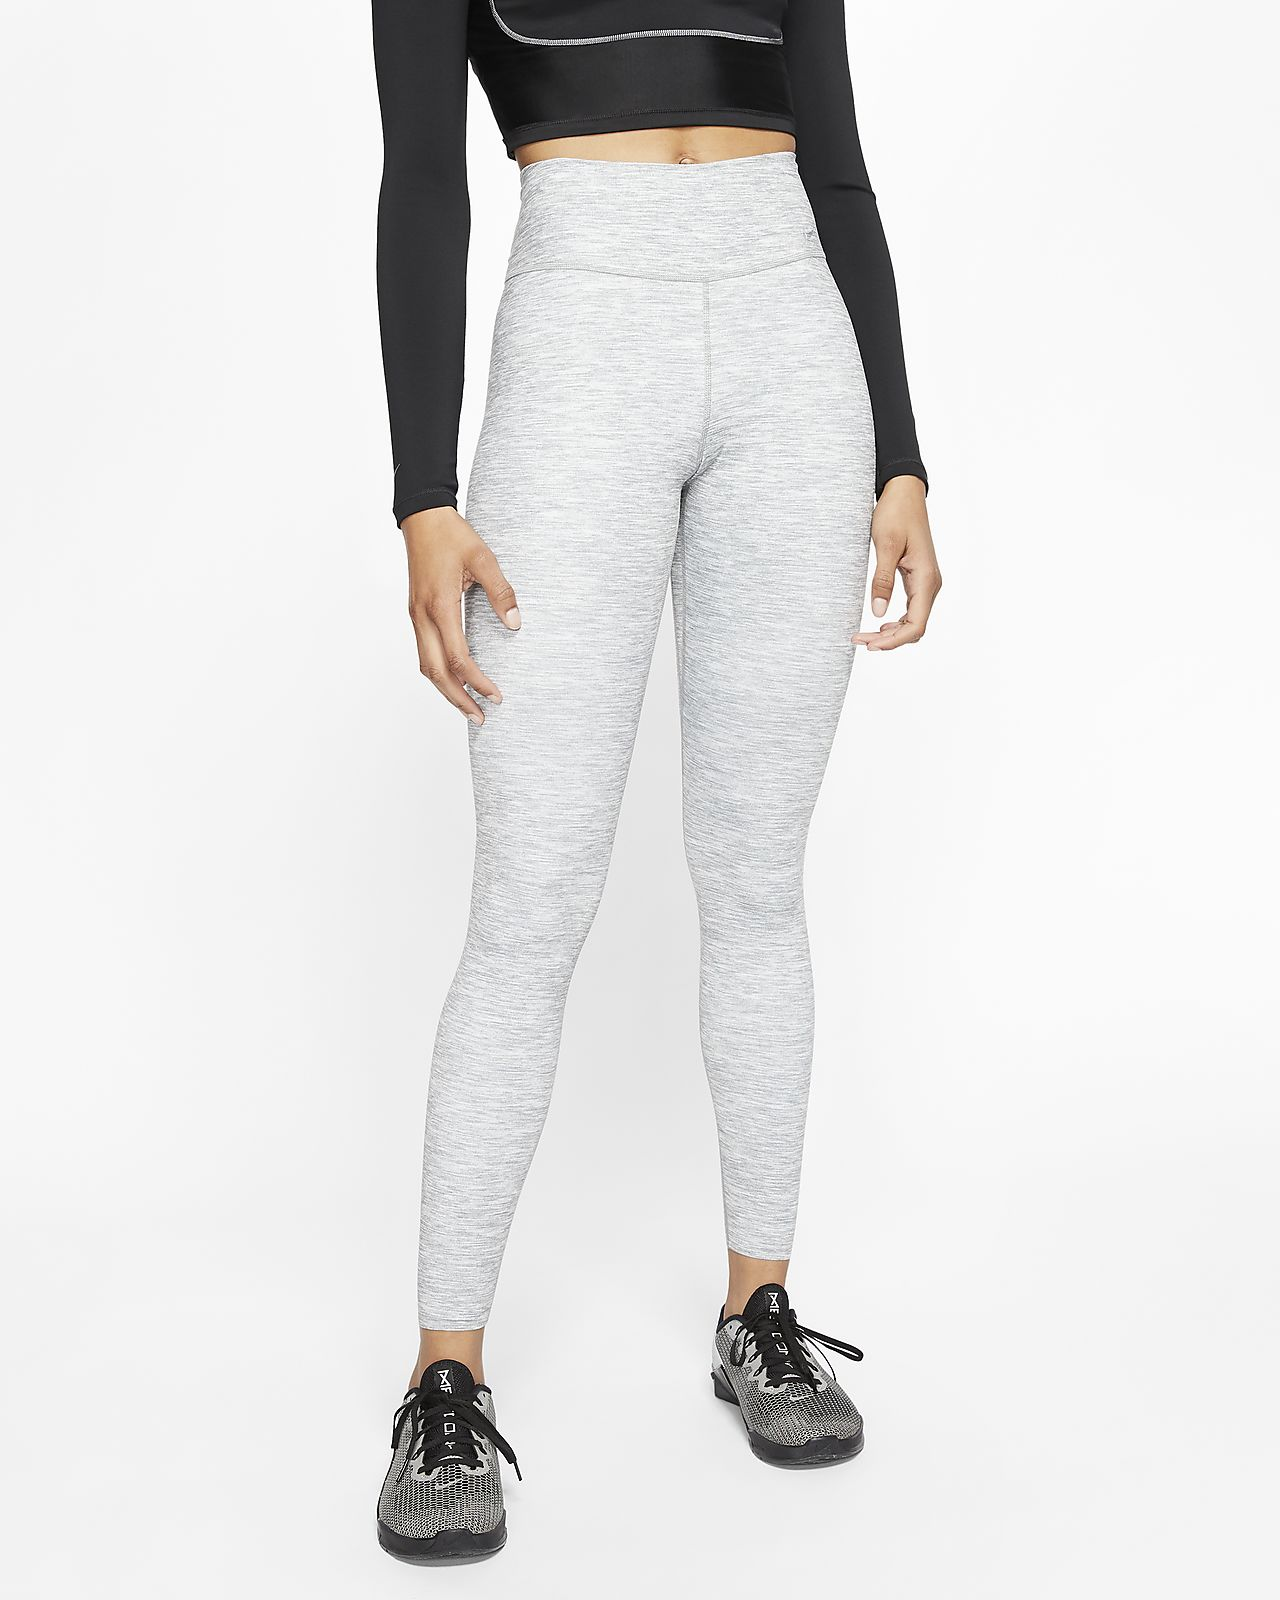 Legging taille mi-basse chiné Nike One Luxe pour Femme